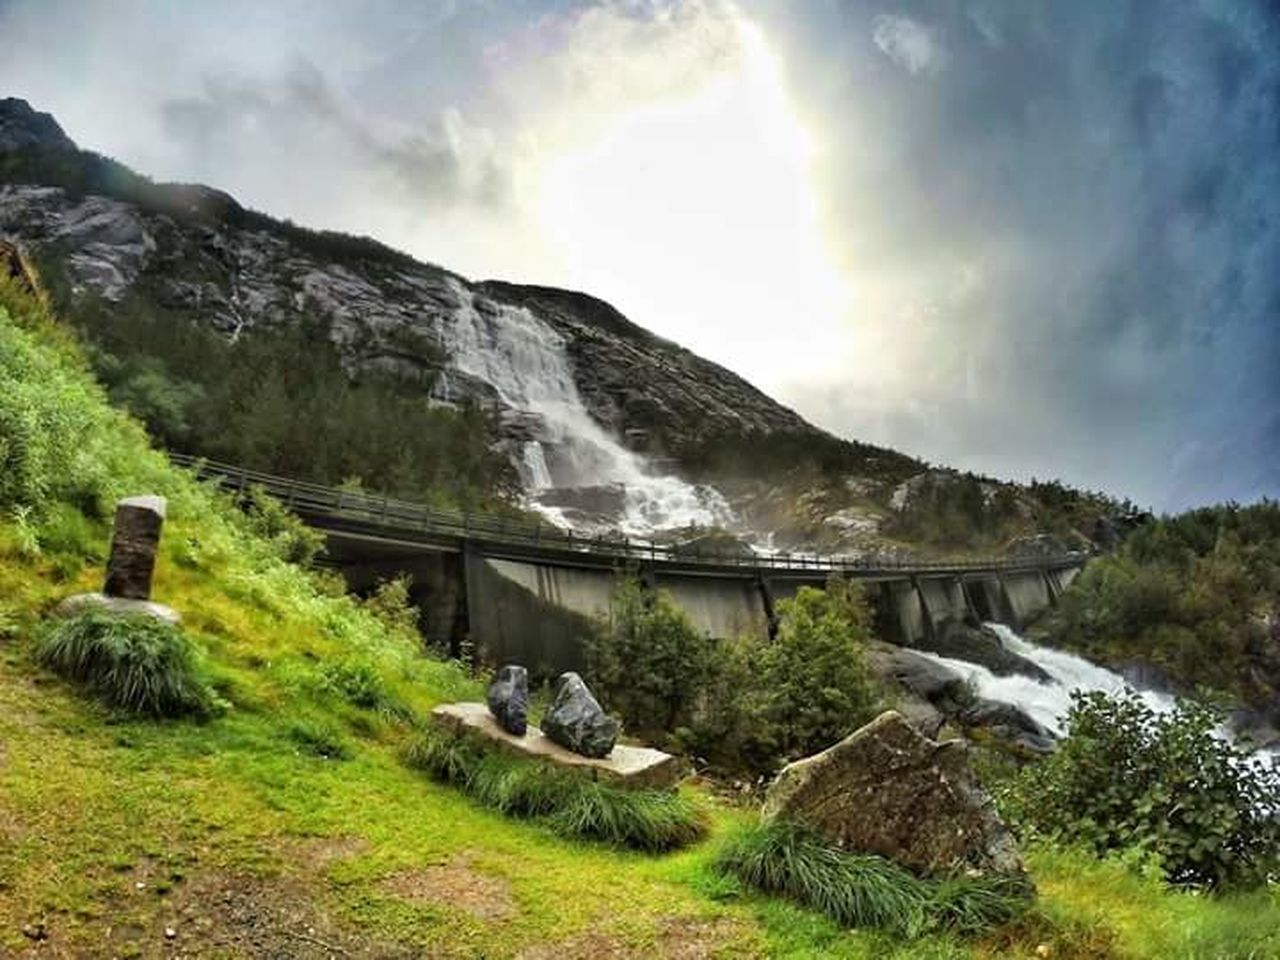 Langfoss Norway Norwaynature Norge Norgefoto Beauty In Nature Nature Geology Green Color Scenics Landscape Outdoors Waterfall Etne Follow4follow Travel Destinations Goproworld Goprotravel Eyemphotography Travel Photography Aroundtheworld Goprophotography NorwayTourism Beauty In Nature Tourism